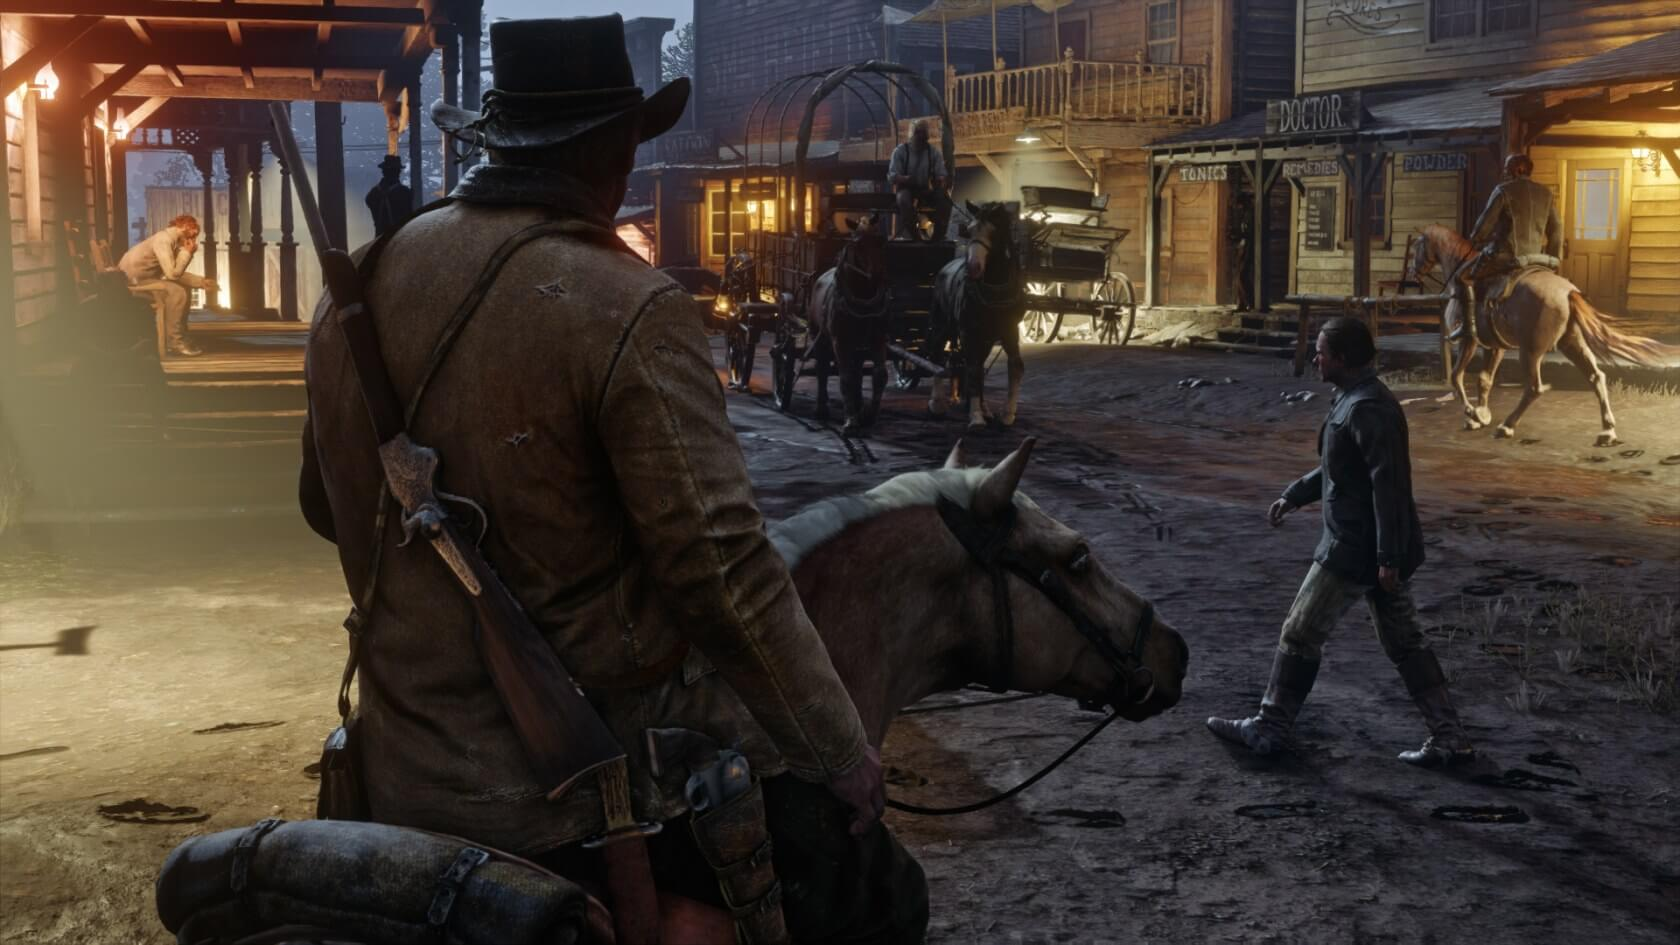 Red Dead Redemption 2 surpassed the original game's lifetime sales in eight days